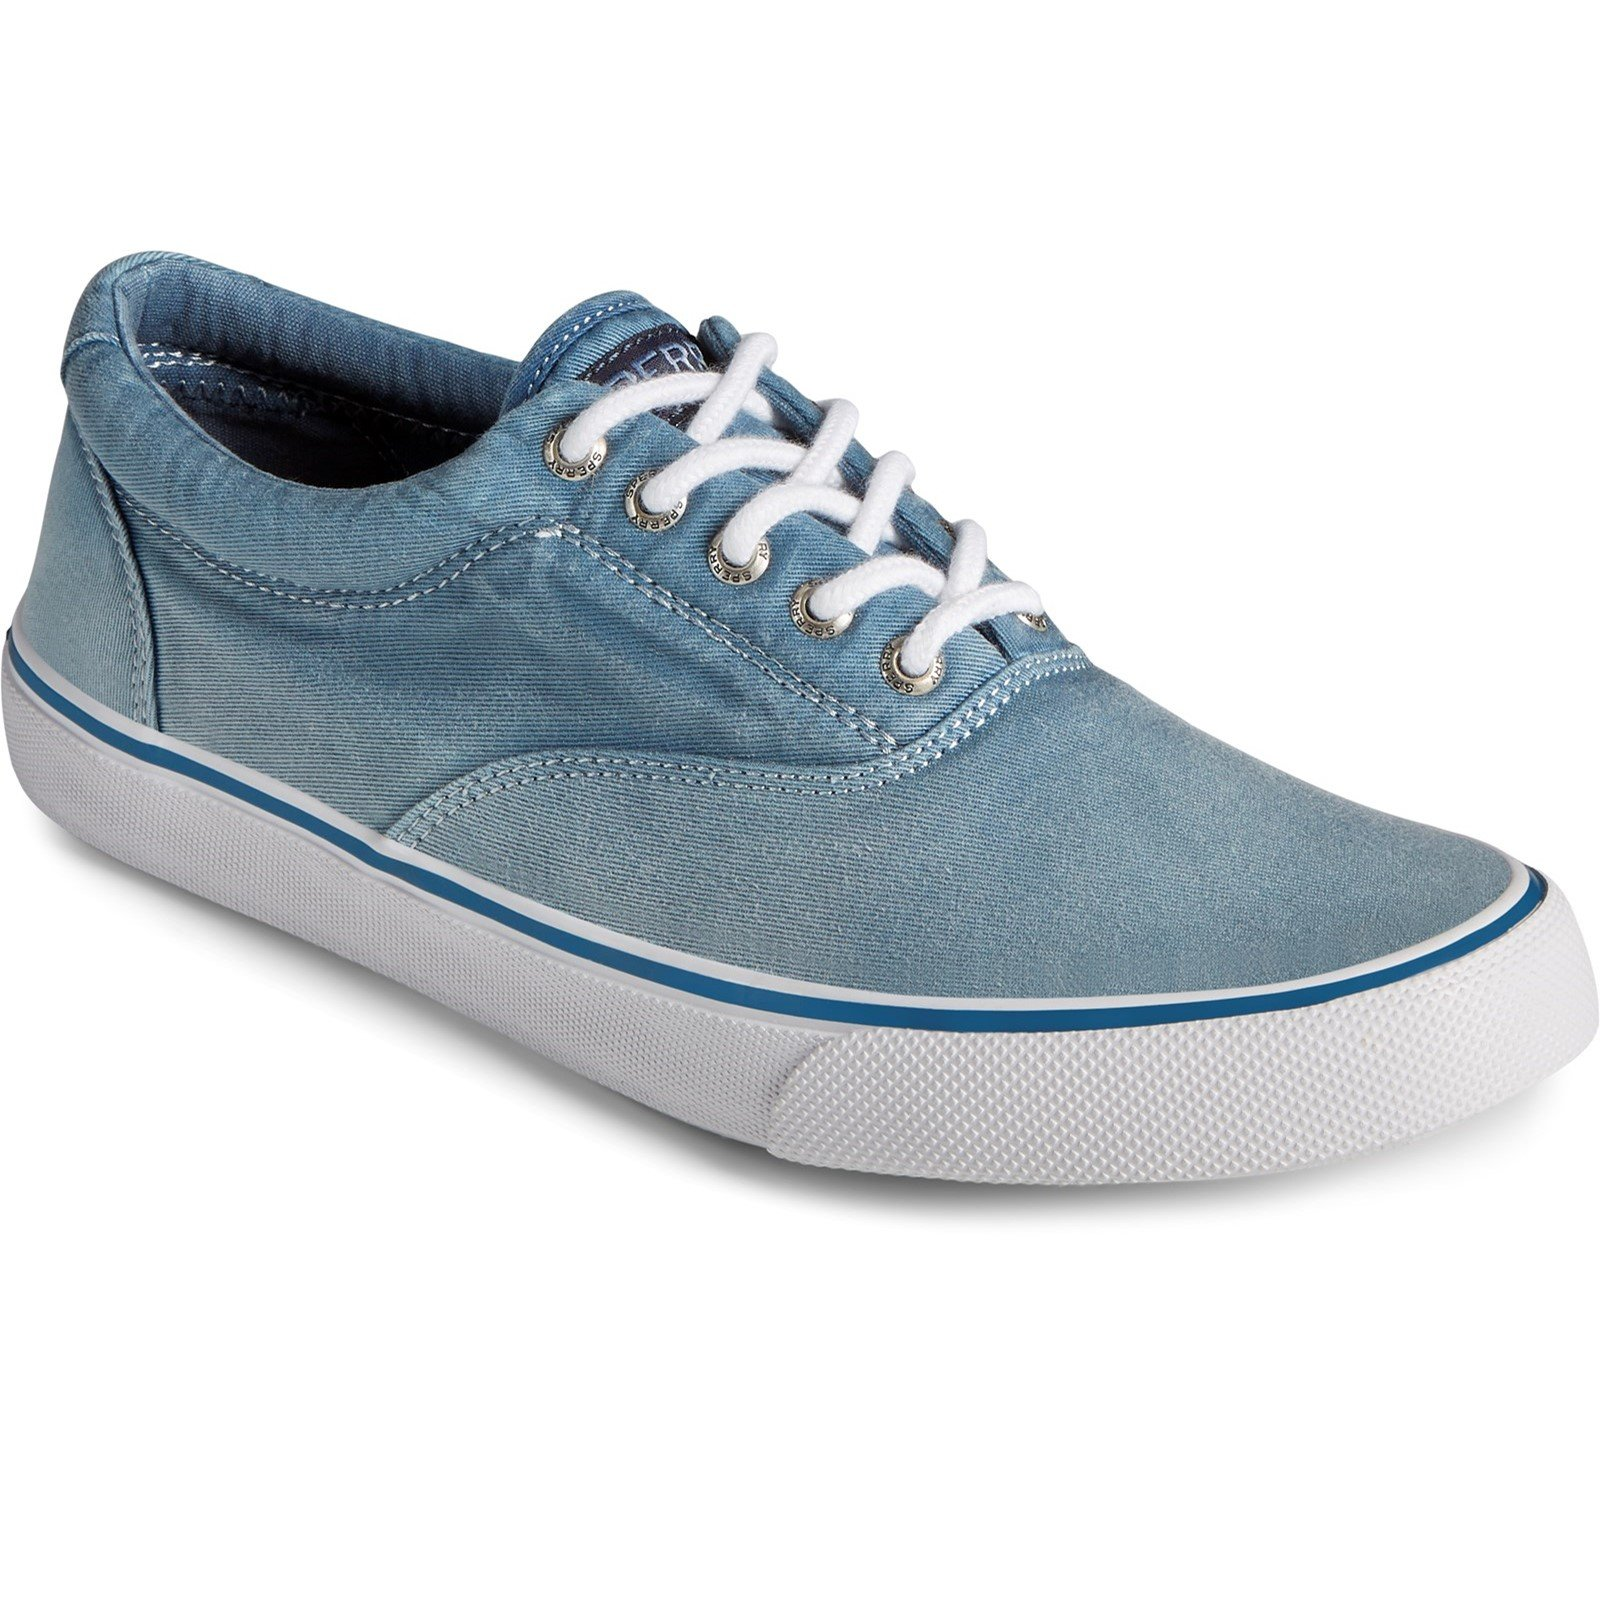 Sperry Men's Striper II CVO Ombre Lace Trainer Various Colours 32932 - Navy 8.5